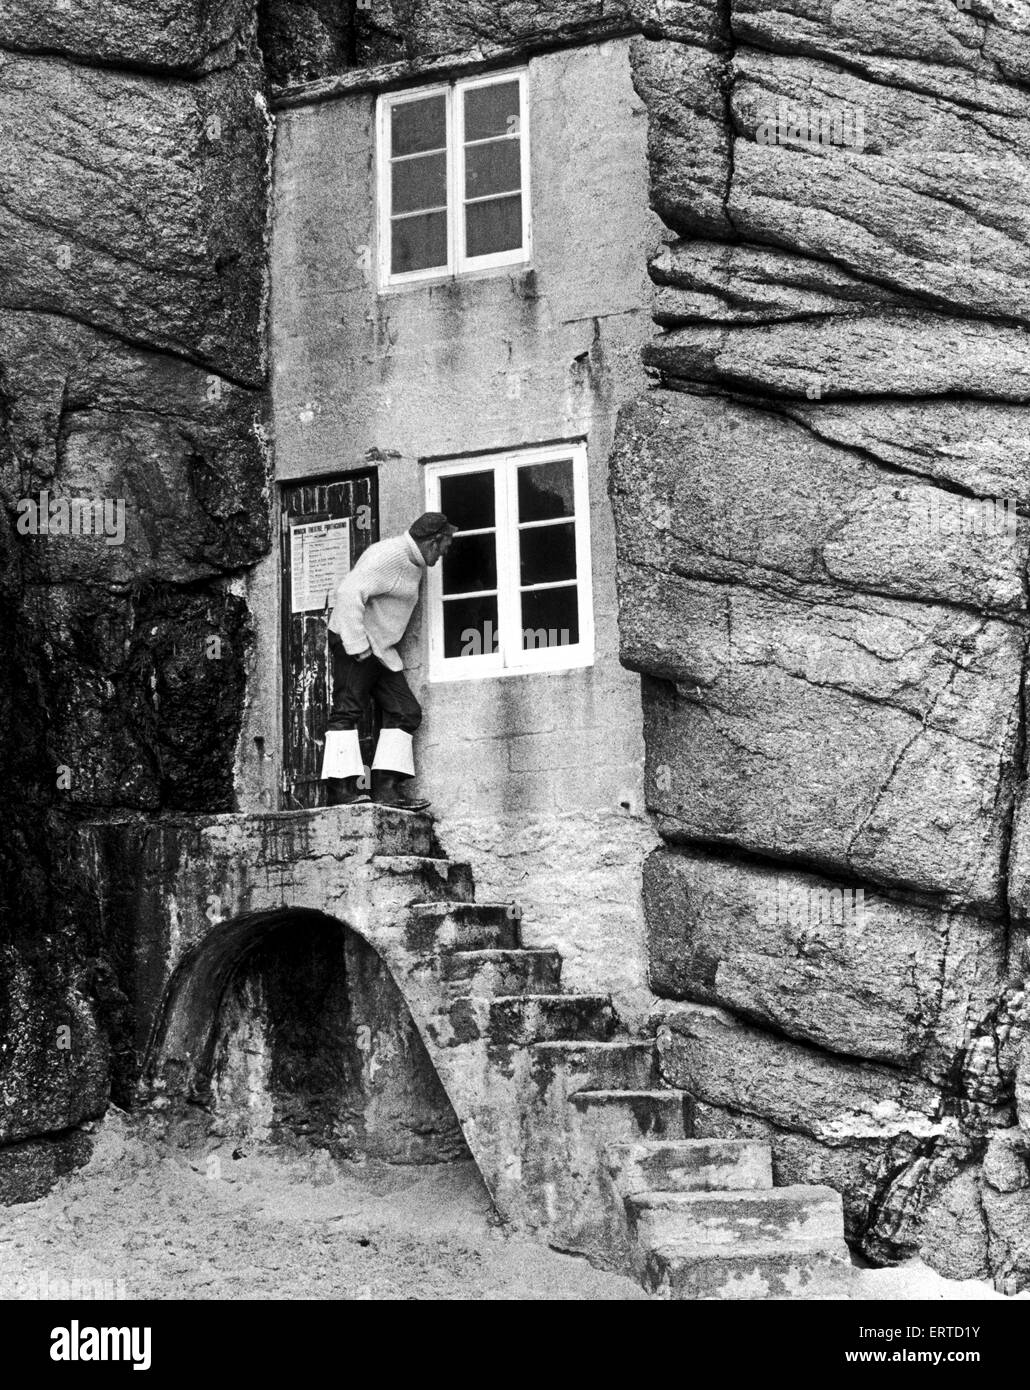 A man looks into the window of a tiny house built into the rocks overlooking the sandy cove of Porthcurno, Cornwall. - Stock Image